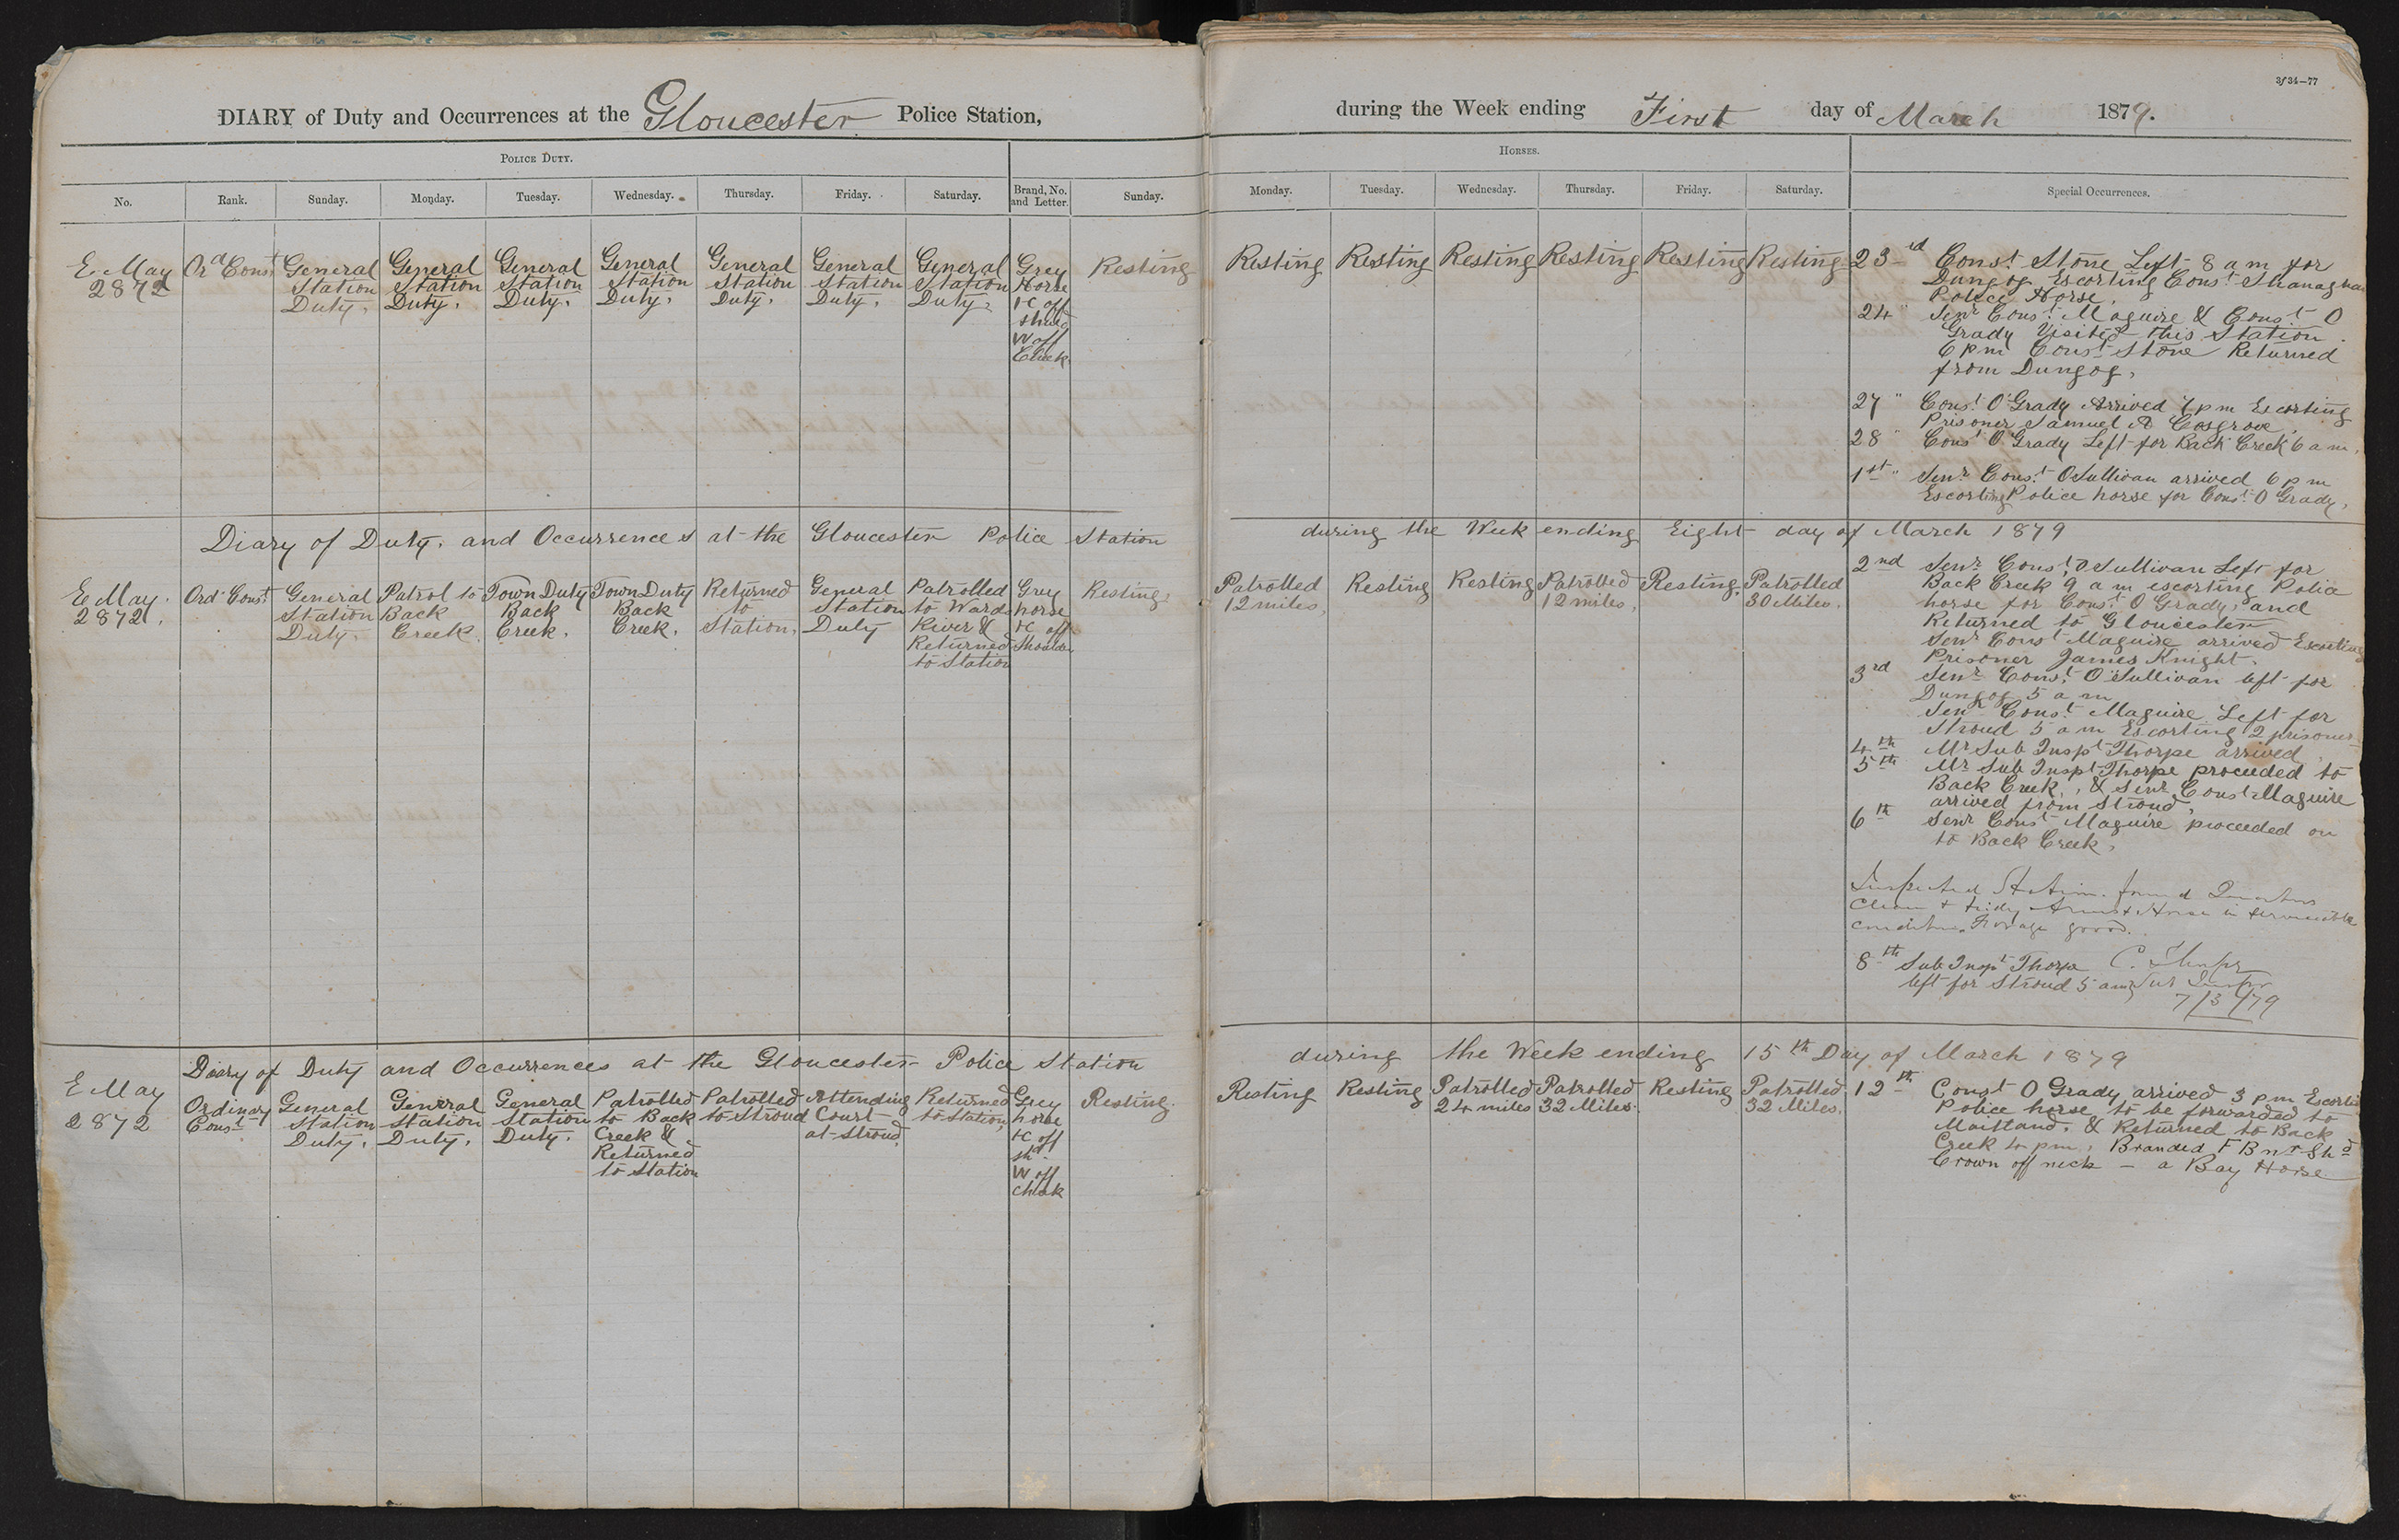 Diary of duty and occurrences at the Gloucester Police Station during the week ending the 1st day of March 1879